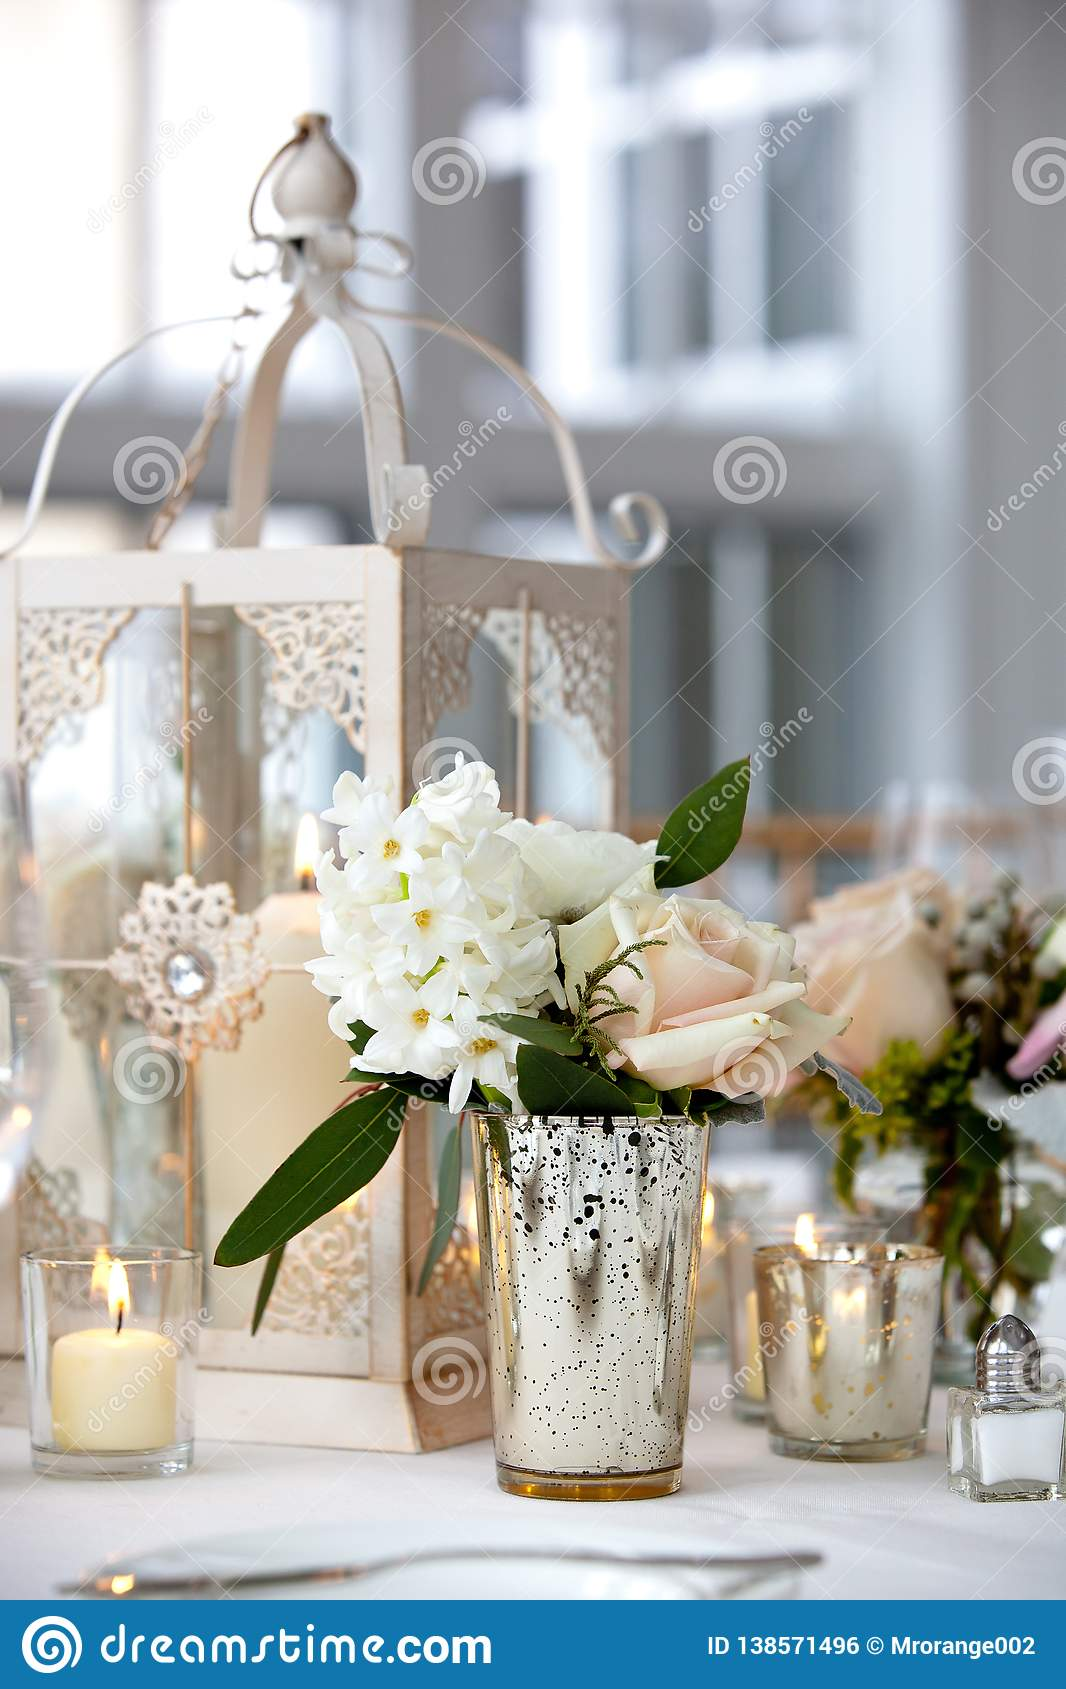 Wedding Table Decoration Series Soft Pink And White Bouquet Of Flowers In Vases Stock Photo Image Of Decoration Interior 138571496